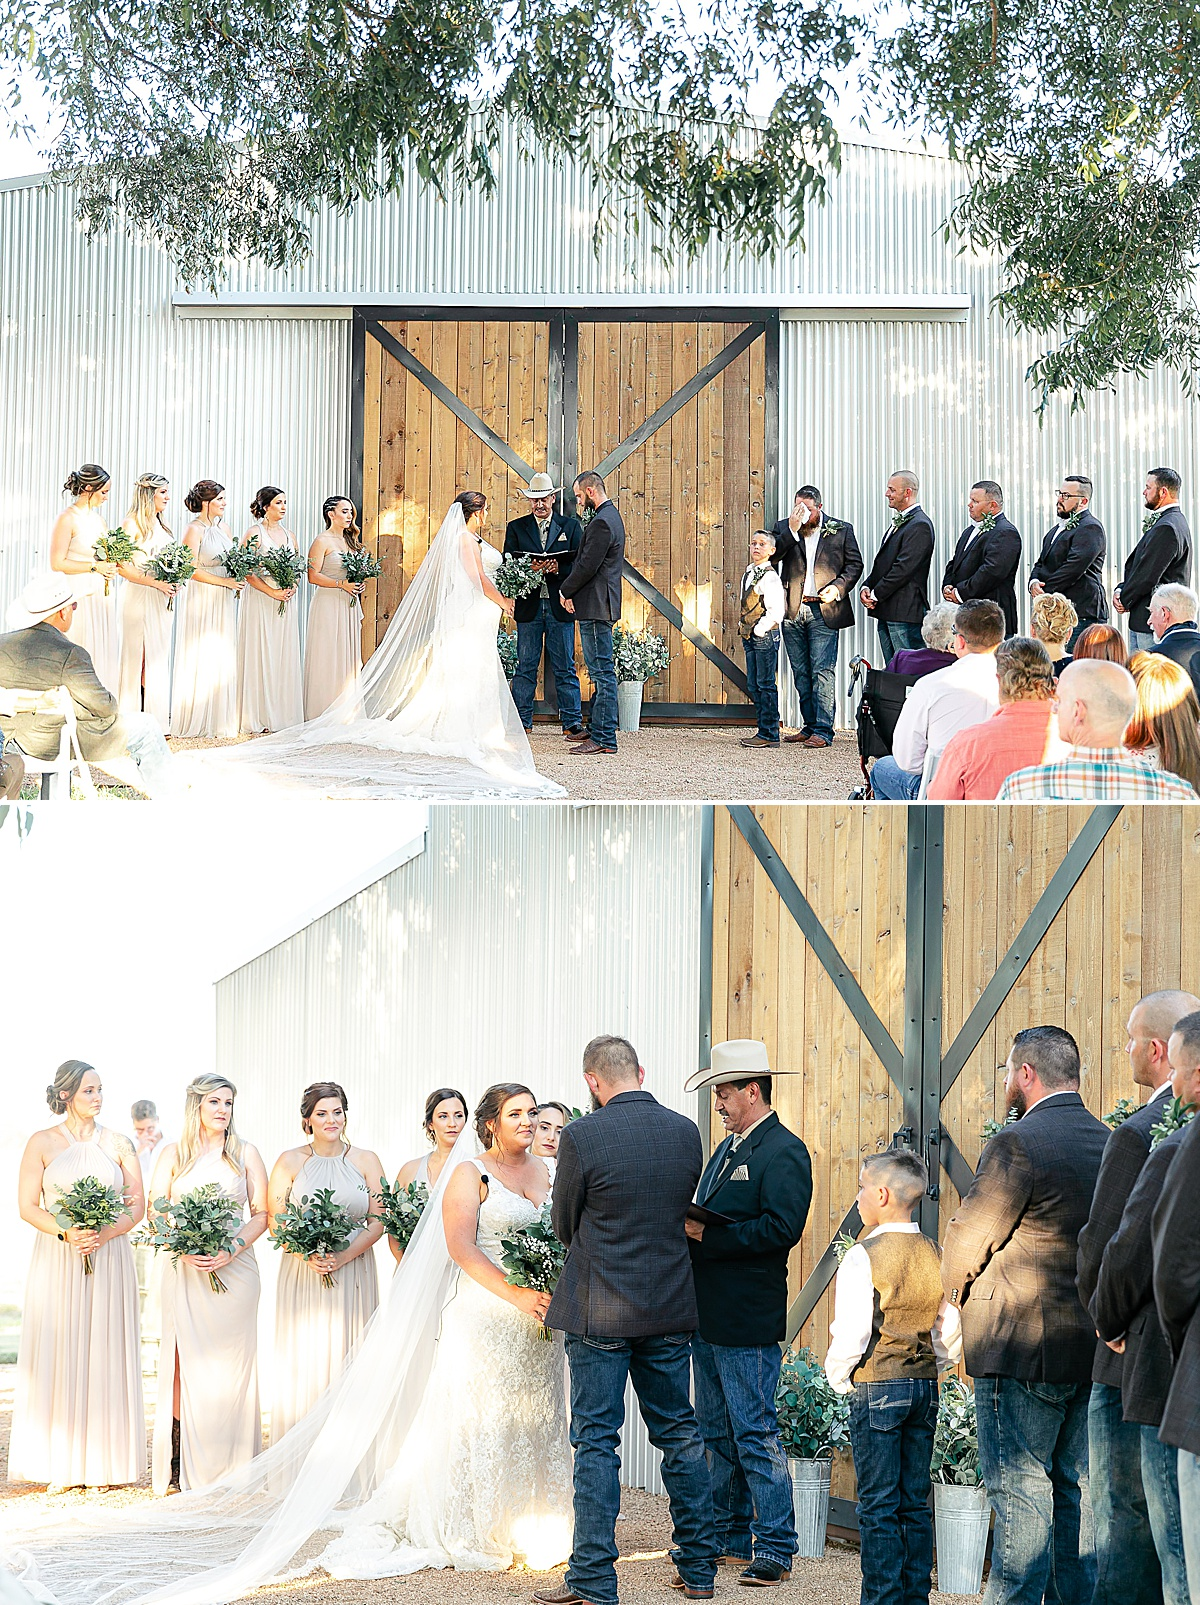 Rustic-Texas-Wedding-Hollow-Creek-Ranch-Carly-Barton-Photography_0110.jpg